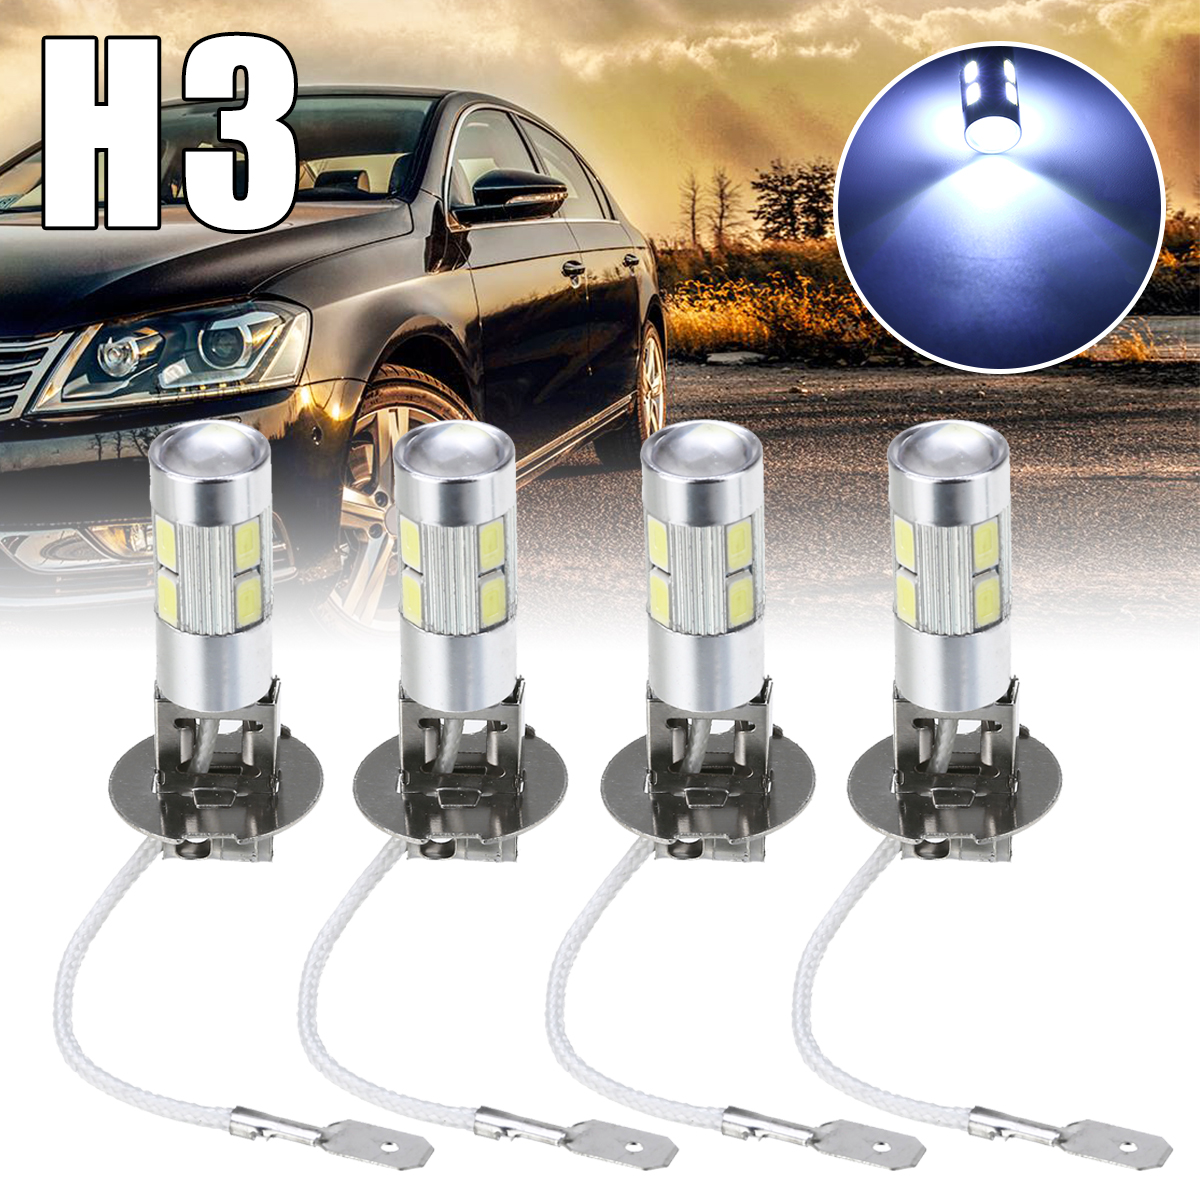 4Pcs Car Light <font><b>H3</b></font> 5630 10SMD <font><b>LED</b></font> Car Fog Driving Light Lamp <font><b>Bulb</b></font> White Auto Head Lamp <font><b>Bulb</b></font> Fog Lights image